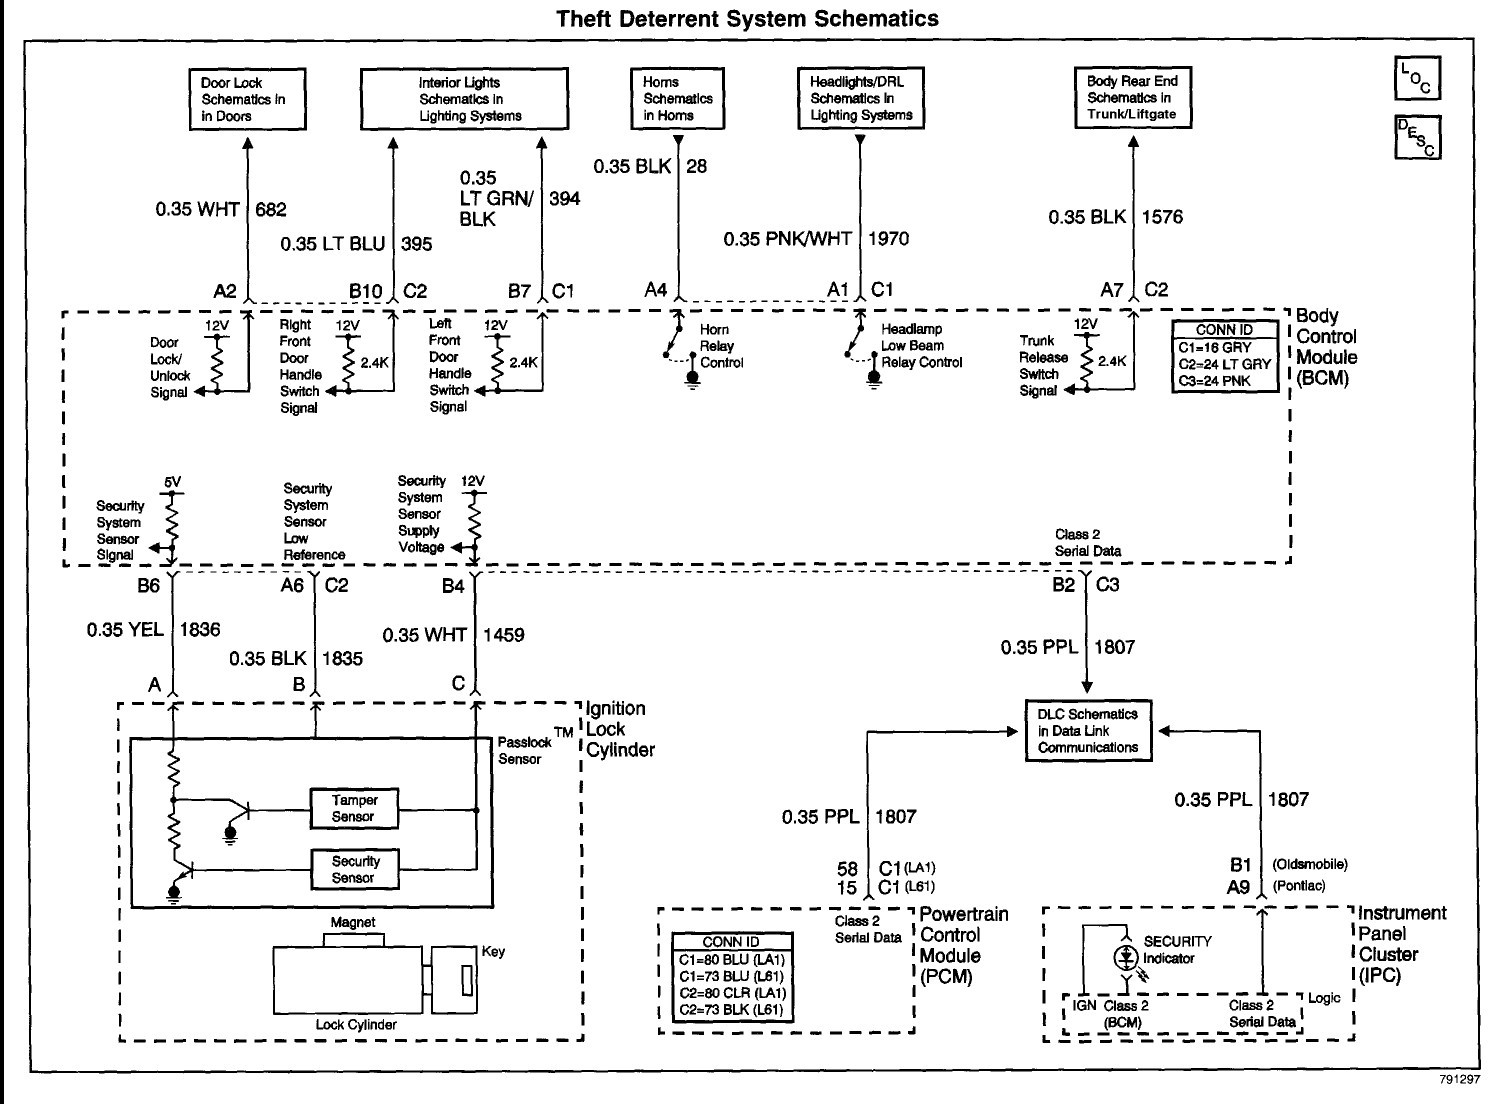 sme_843] wiring diagram for 1996 pontiac grand prix | wiring diagram  sme_843 | series-battery.centrostudimad.it  centrostudimad.it